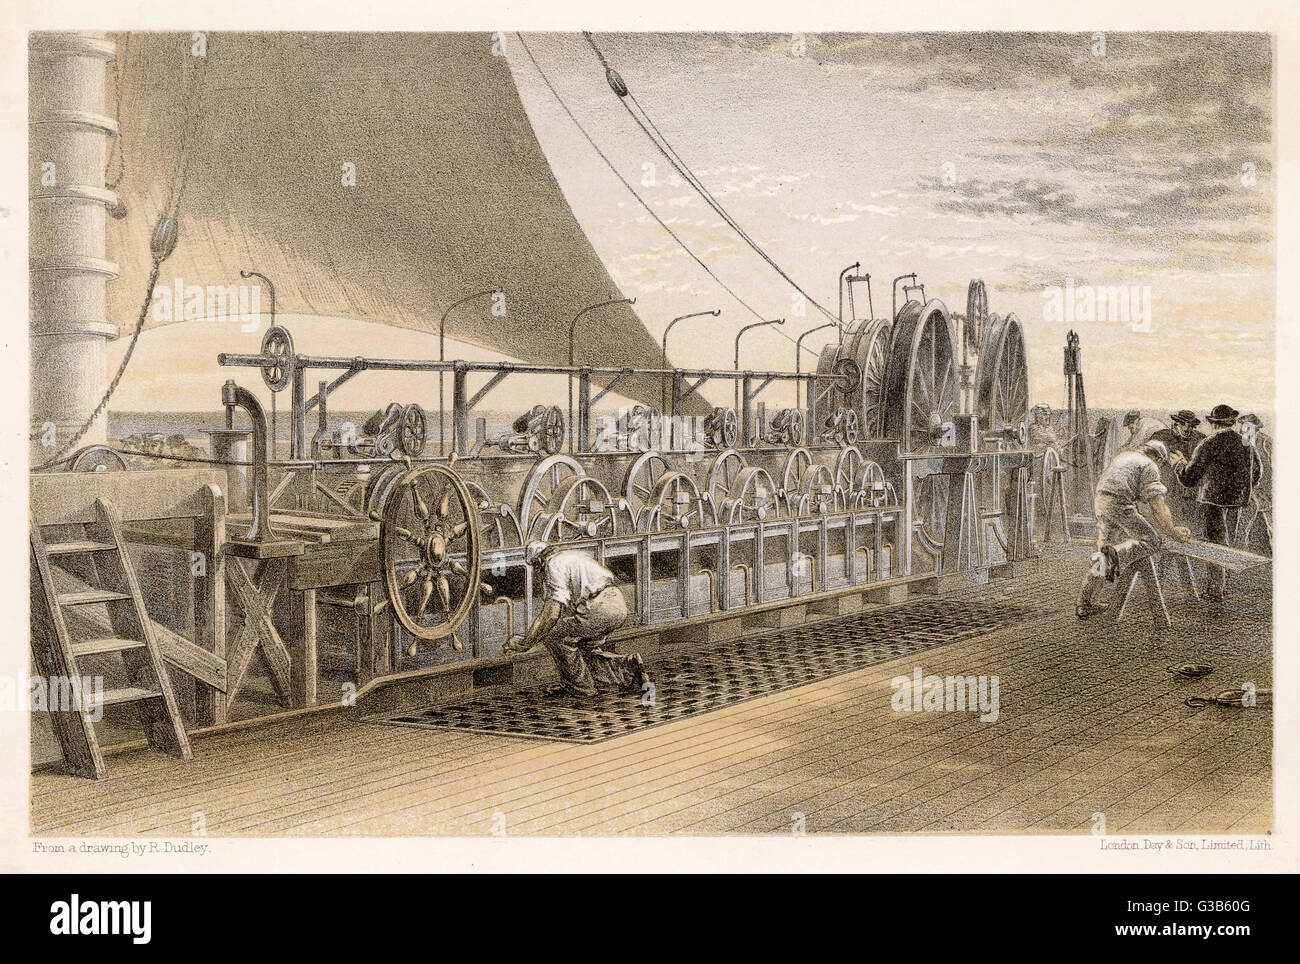 The paying-out machinery on  the deck of the 'Great Eastern' which meticulously  lowers the cable to the - Stock Image